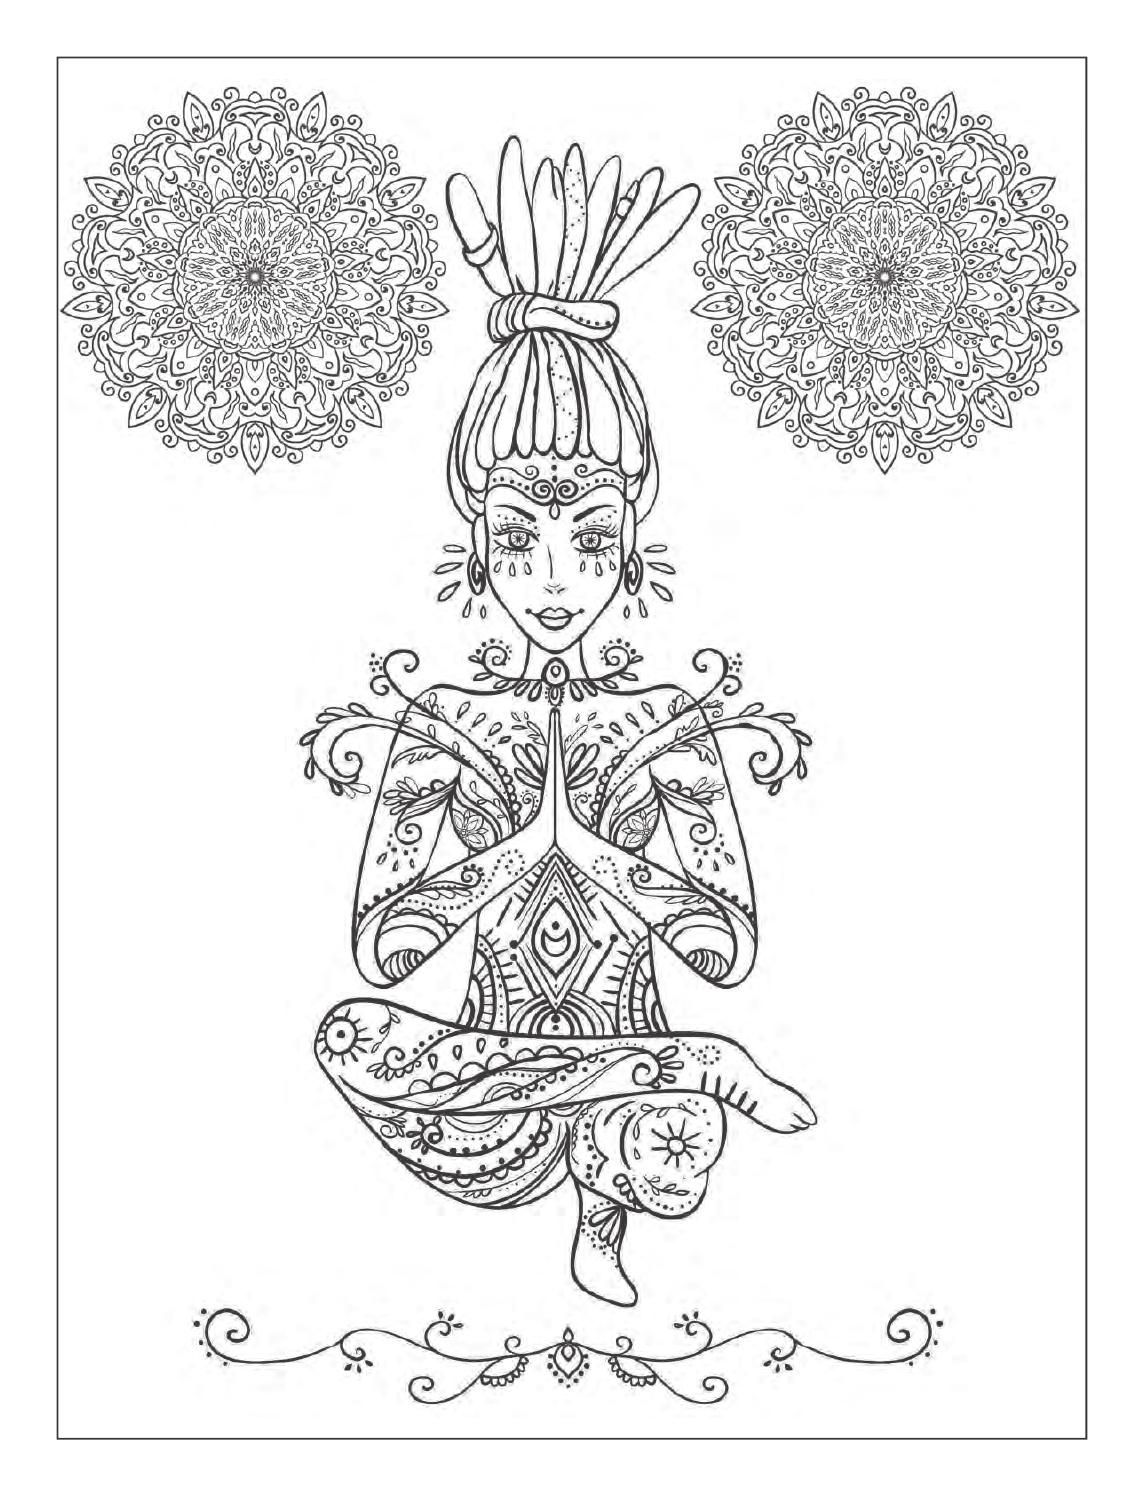 Yoga And Meditation Coloring Book For Adults With Yoga Poses And Mandalas Coloring Books Mandala Coloring Pages [ 1496 x 1147 Pixel ]